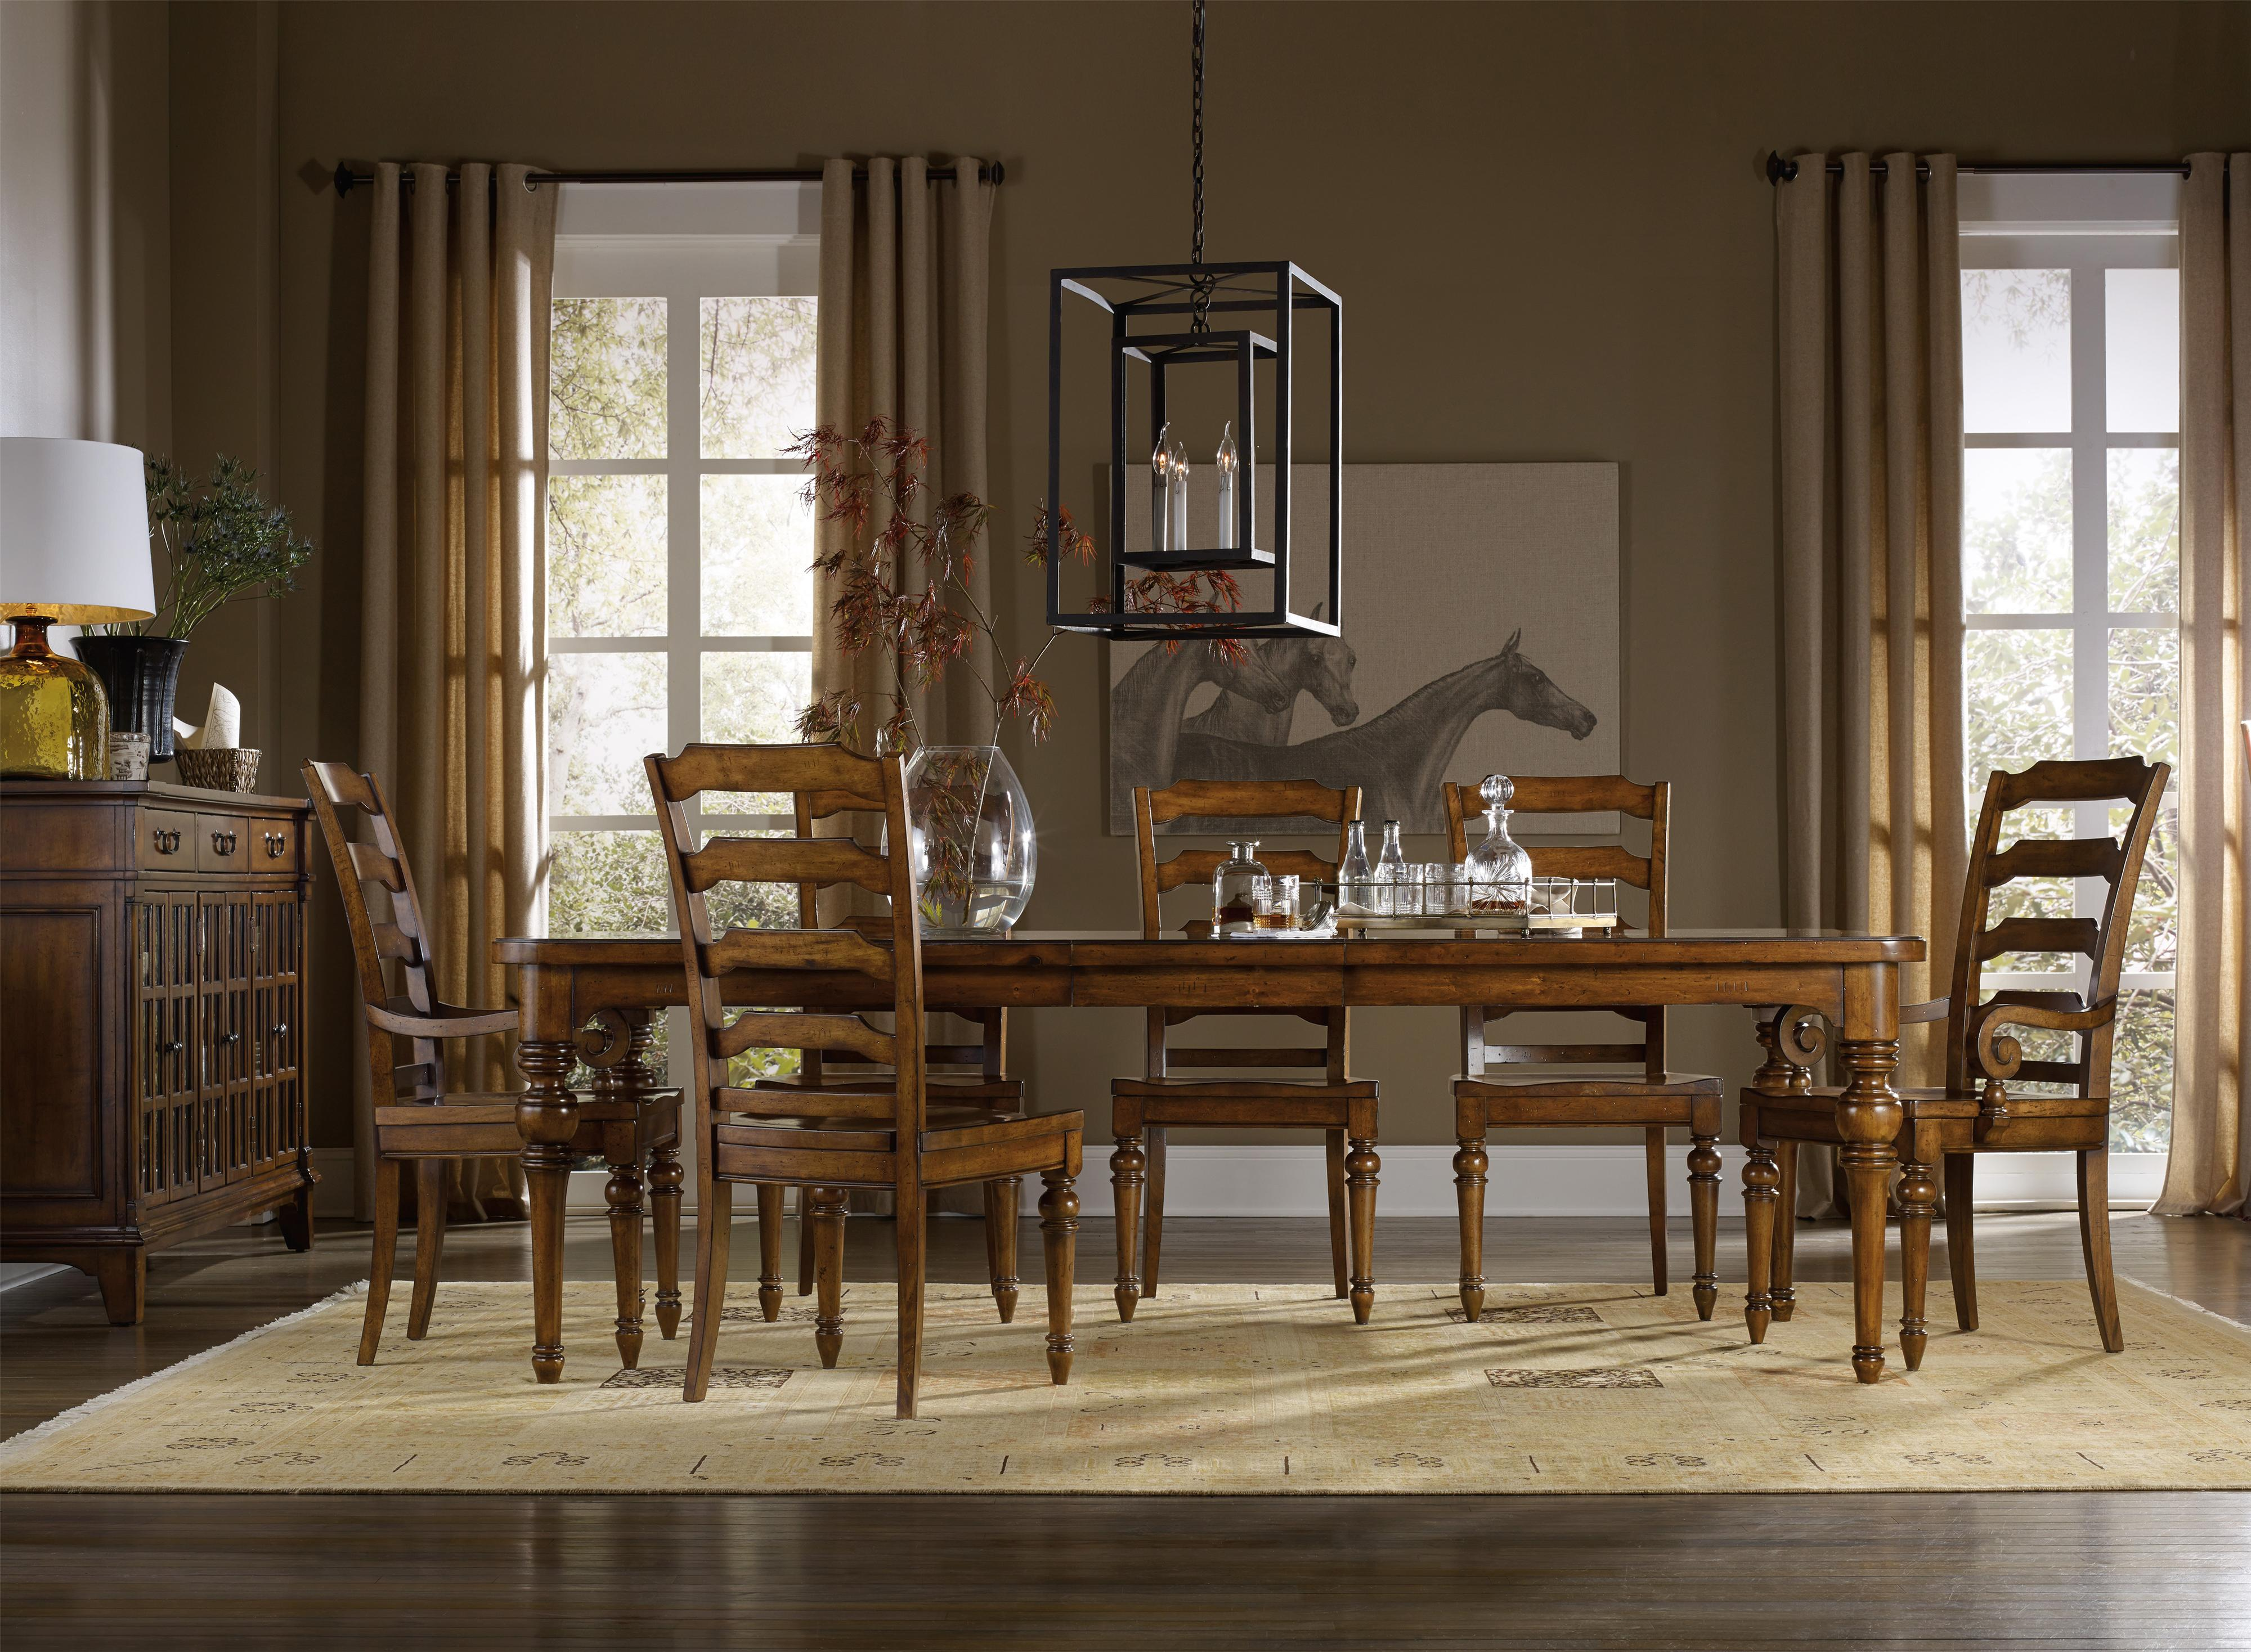 Hooker Furniture Tynecastle Formal Dining Room Group - Item Number: 5323 Dining Room Group 1